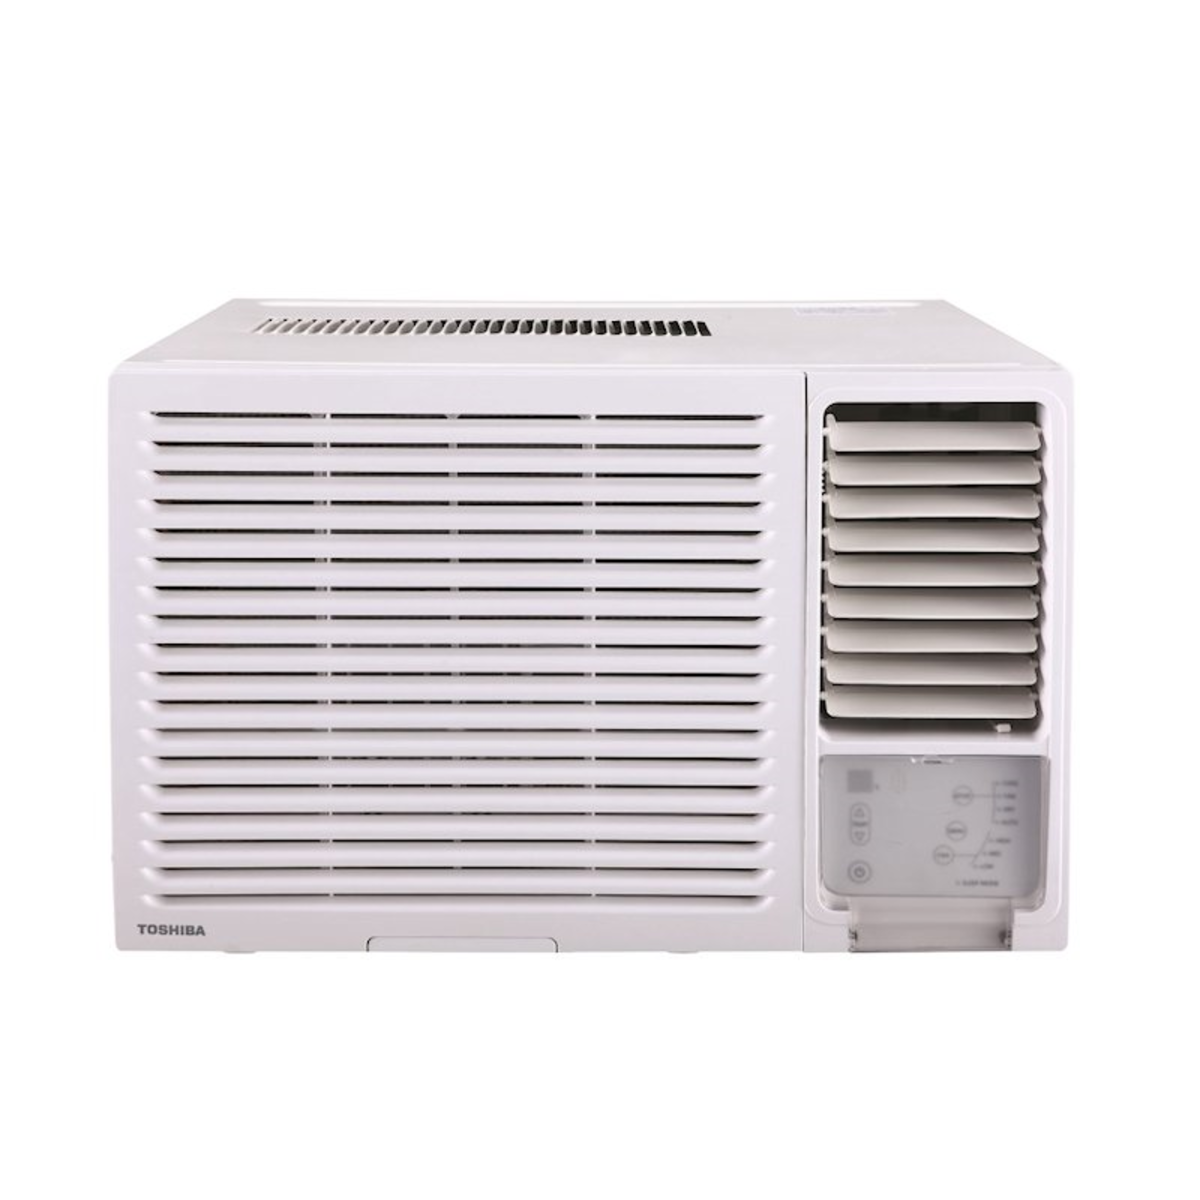 RACH12ER  1.5HP Window Type AirConditioner(Dehumidifying & LED Remote)